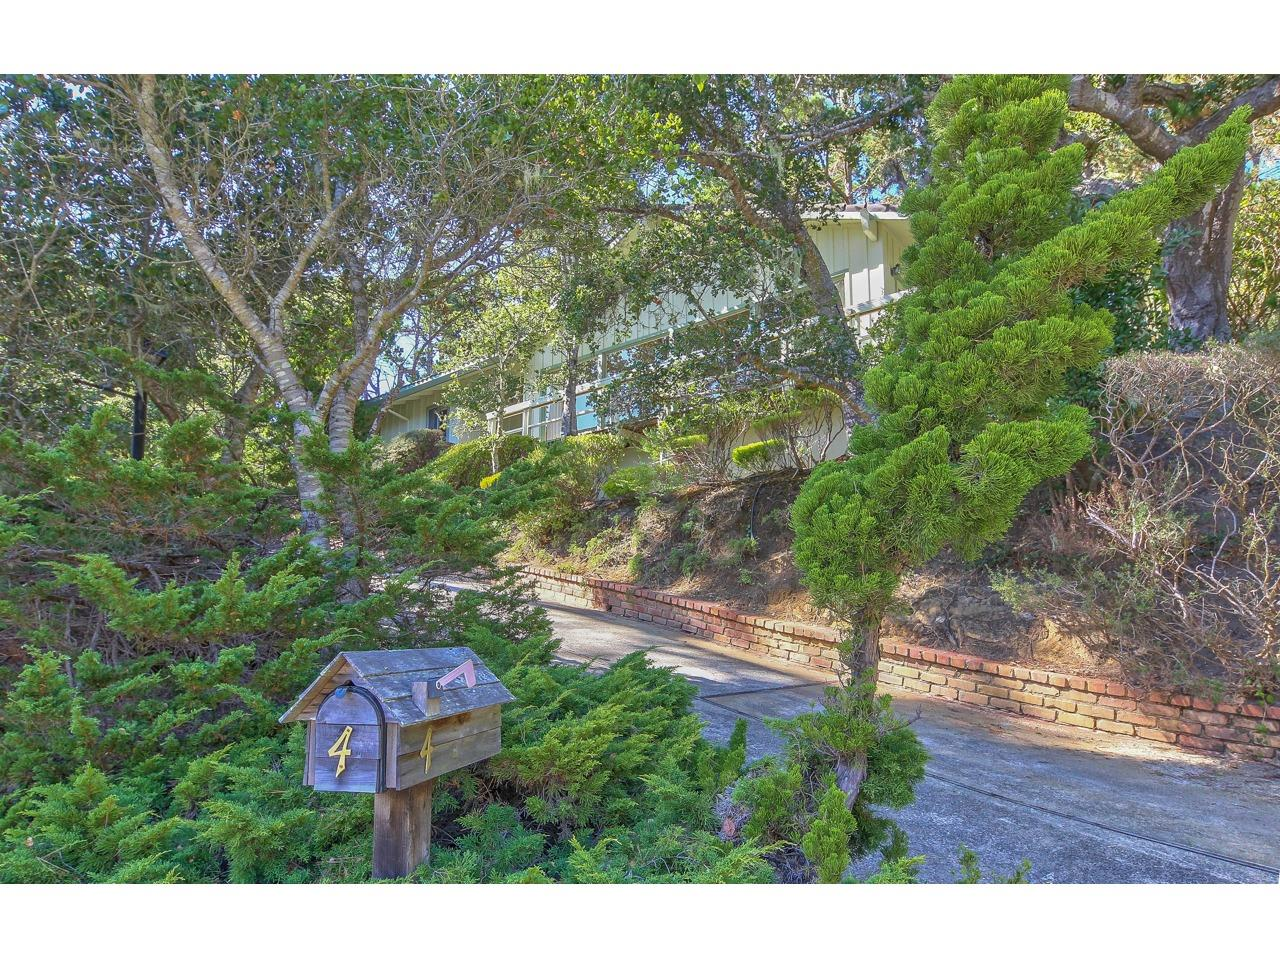 Photo of 4 Forest Knoll, MONTEREY, CA 93940